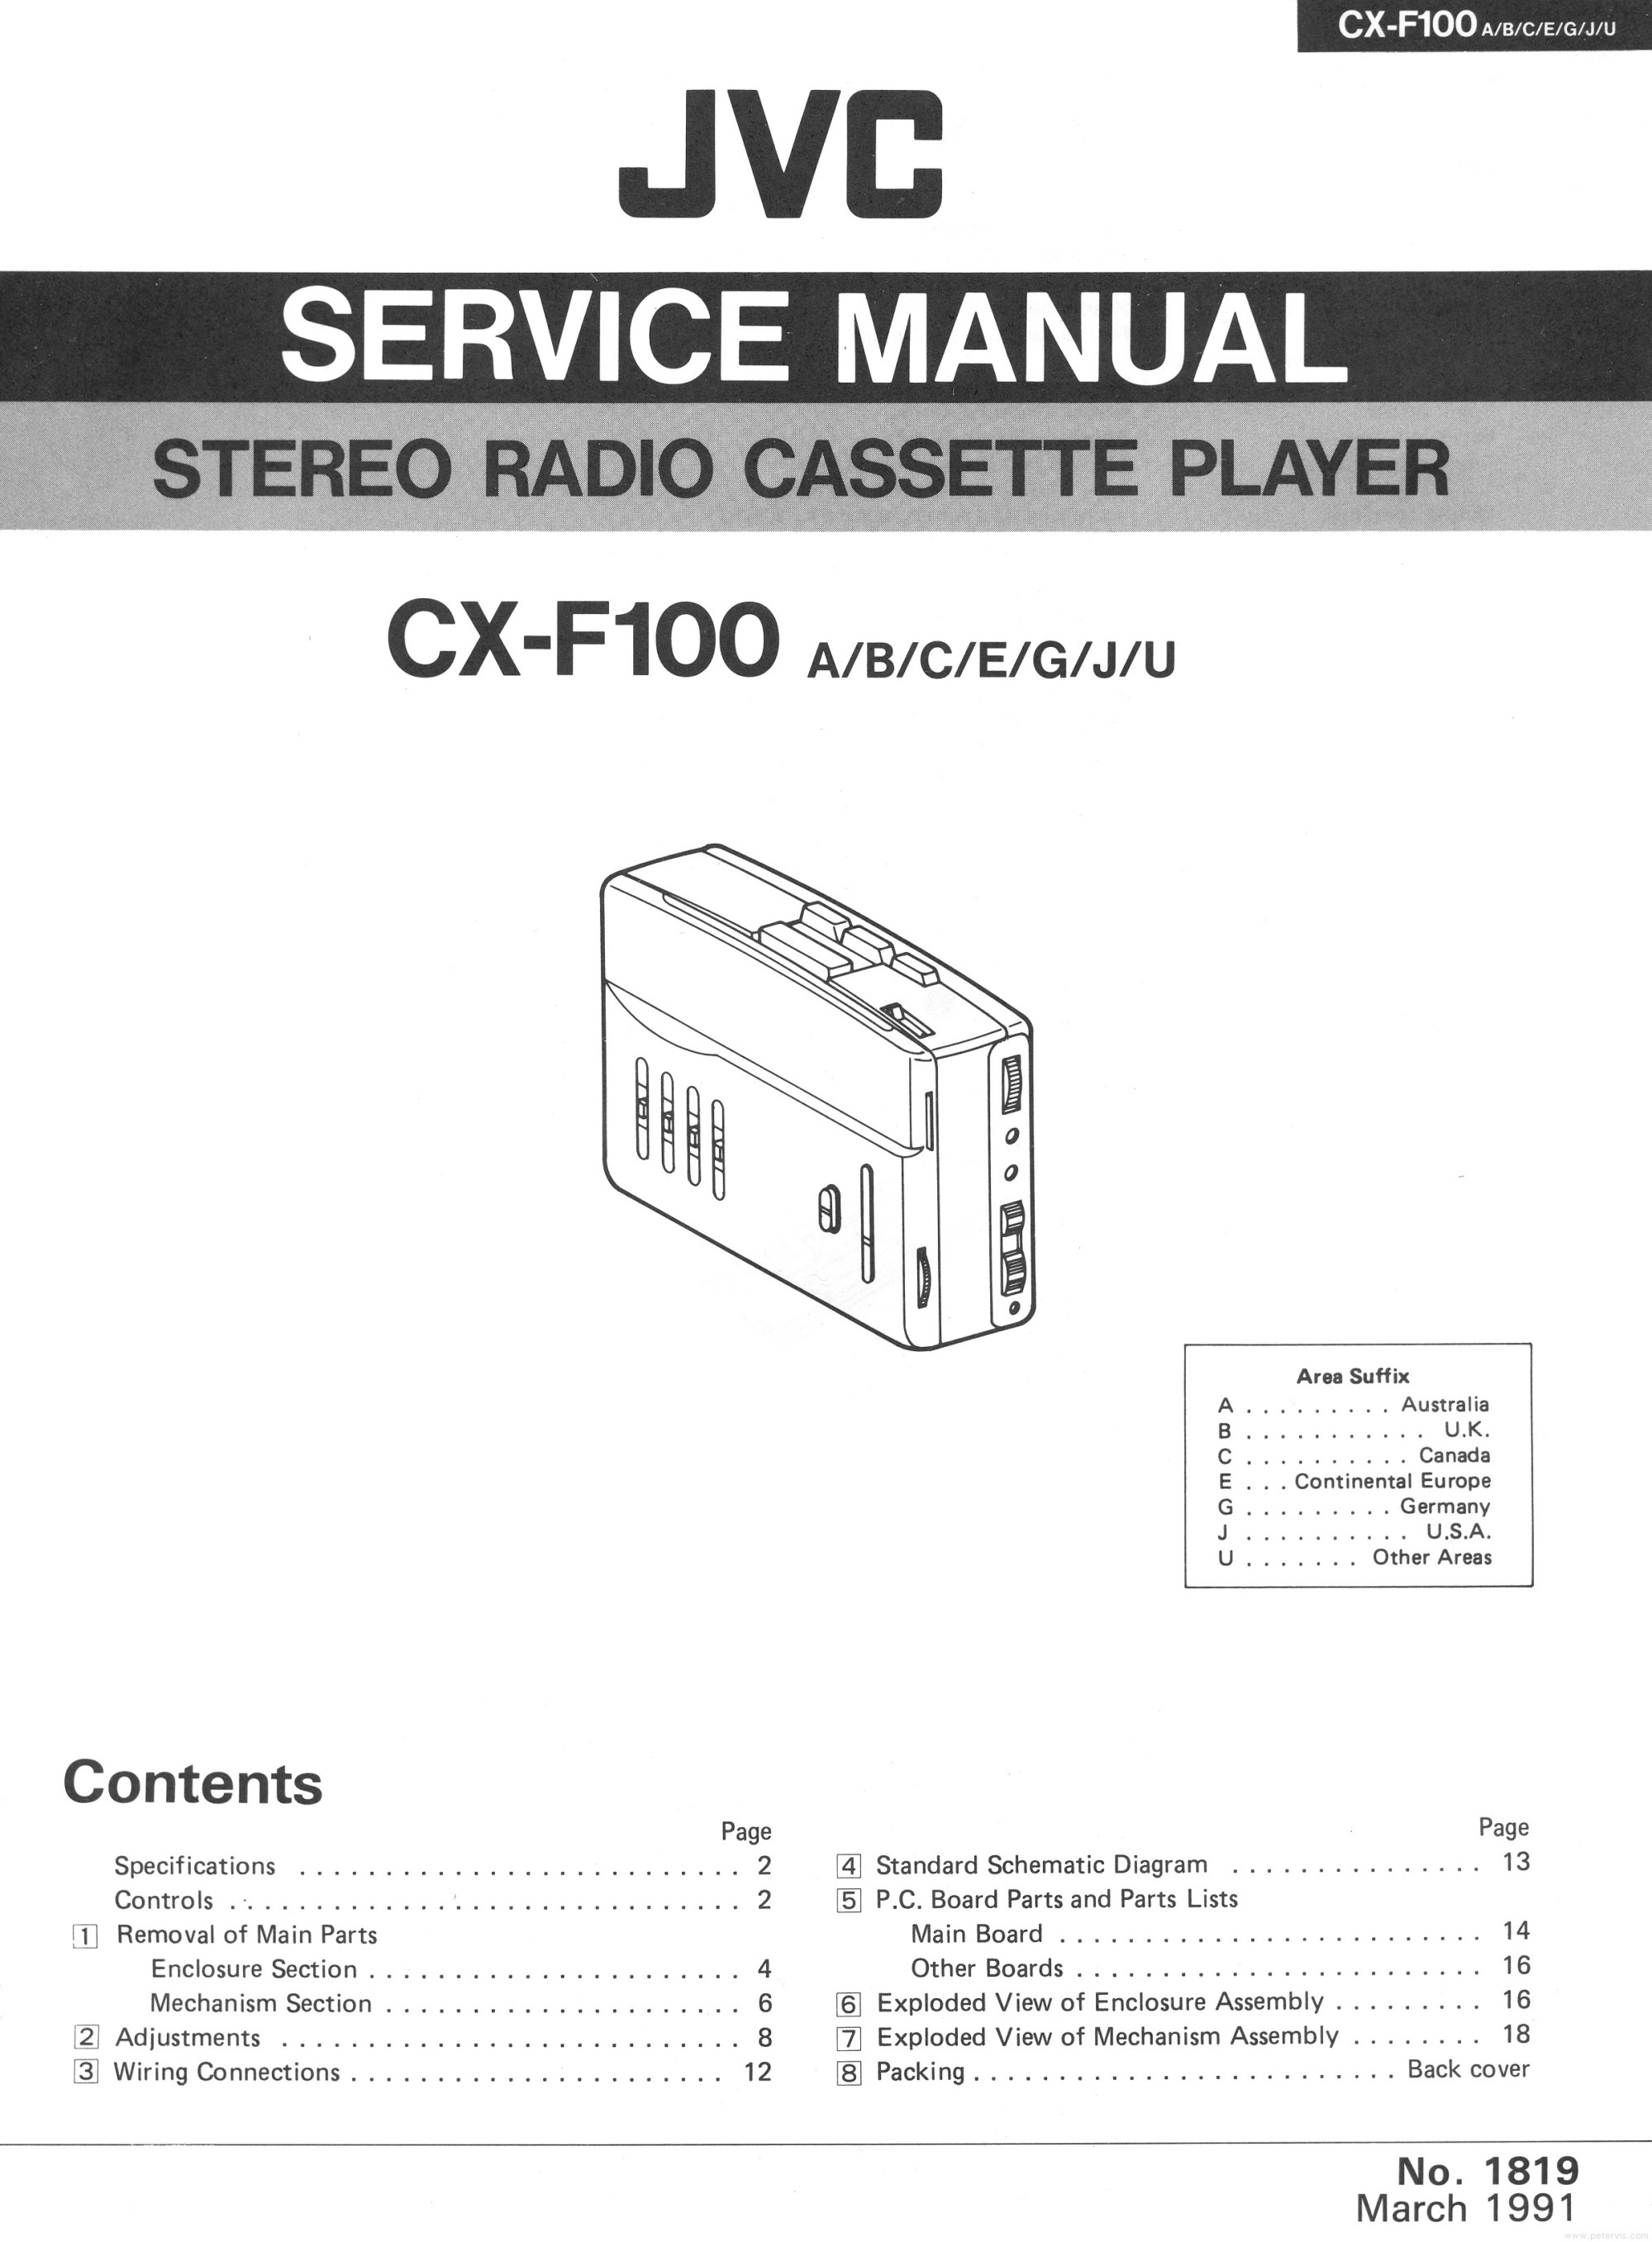 hight resolution of the cx f100 was a stereo cassette player with am fm radio manufactured by the jvc corporation in 1991 it had auto reverse 3 band graphic equalizer